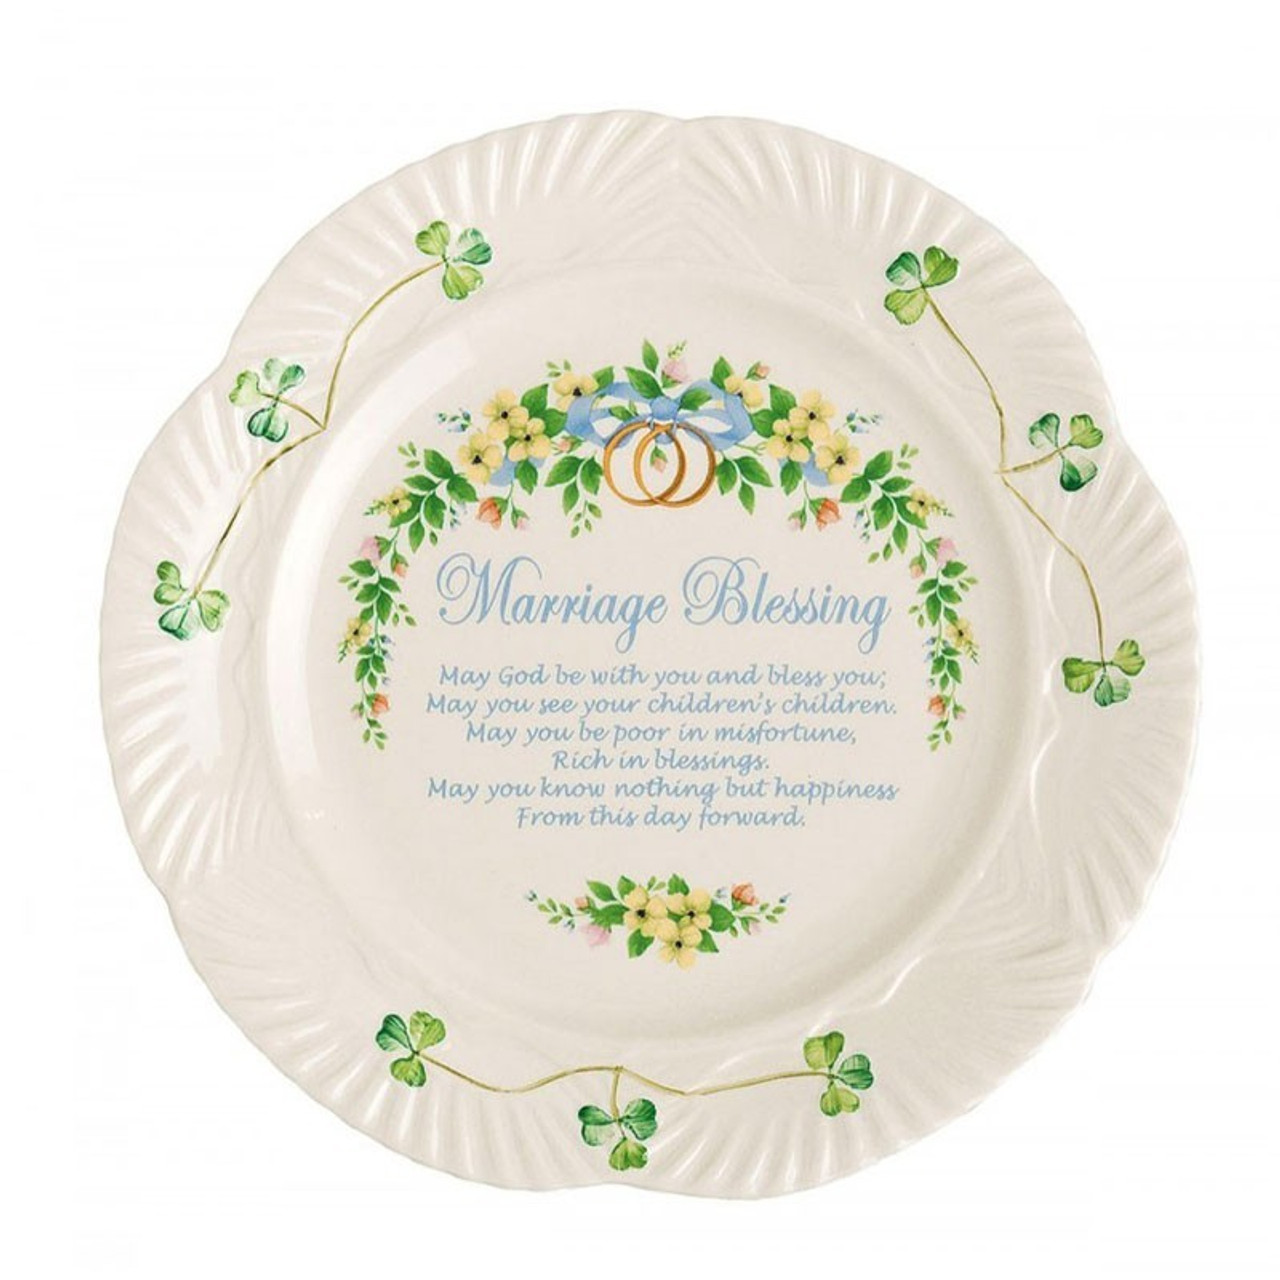 "China 'Marriage Blessing' Plate 9"" by Belleek"